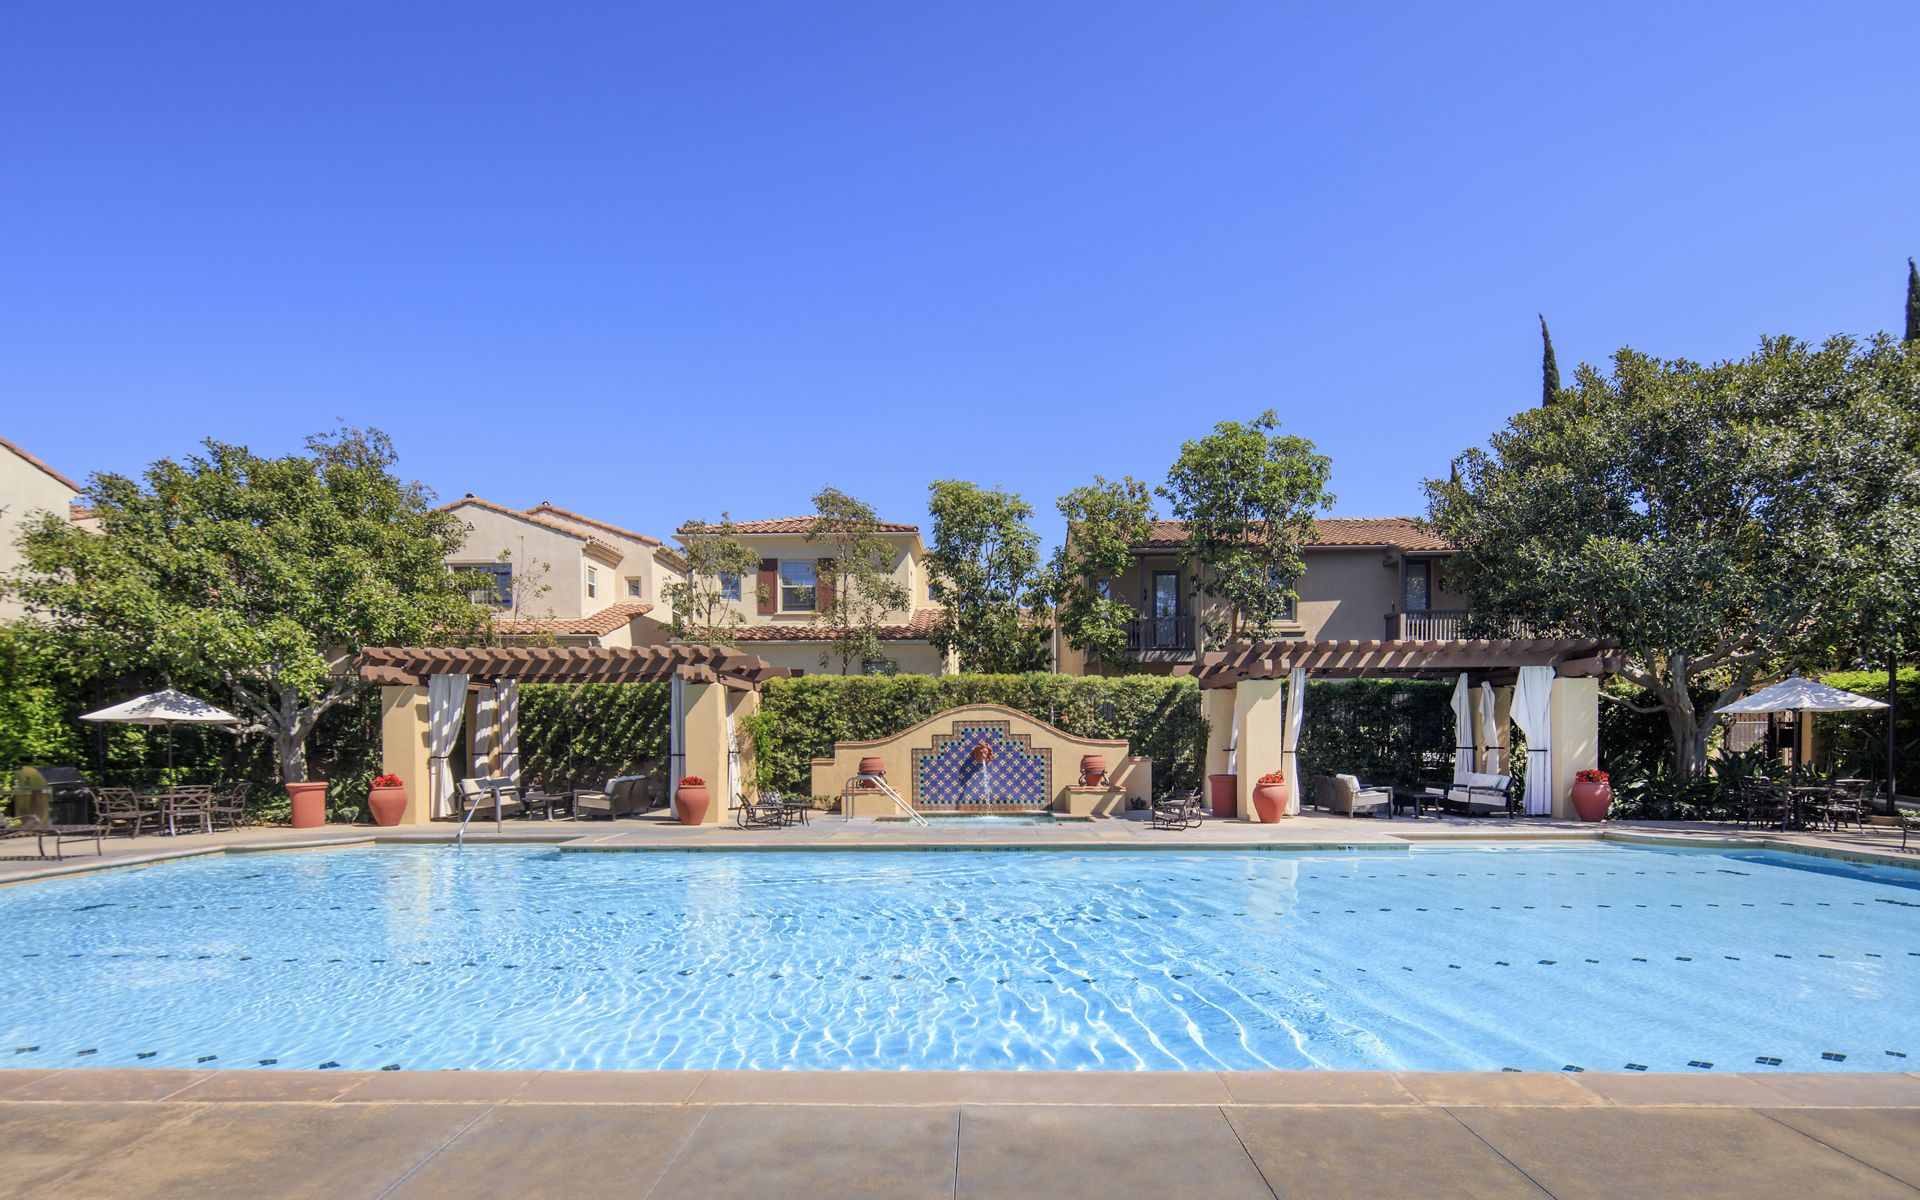 Woodbury Place Apartments at North Irvine - 1 - 3 Bedroom ...